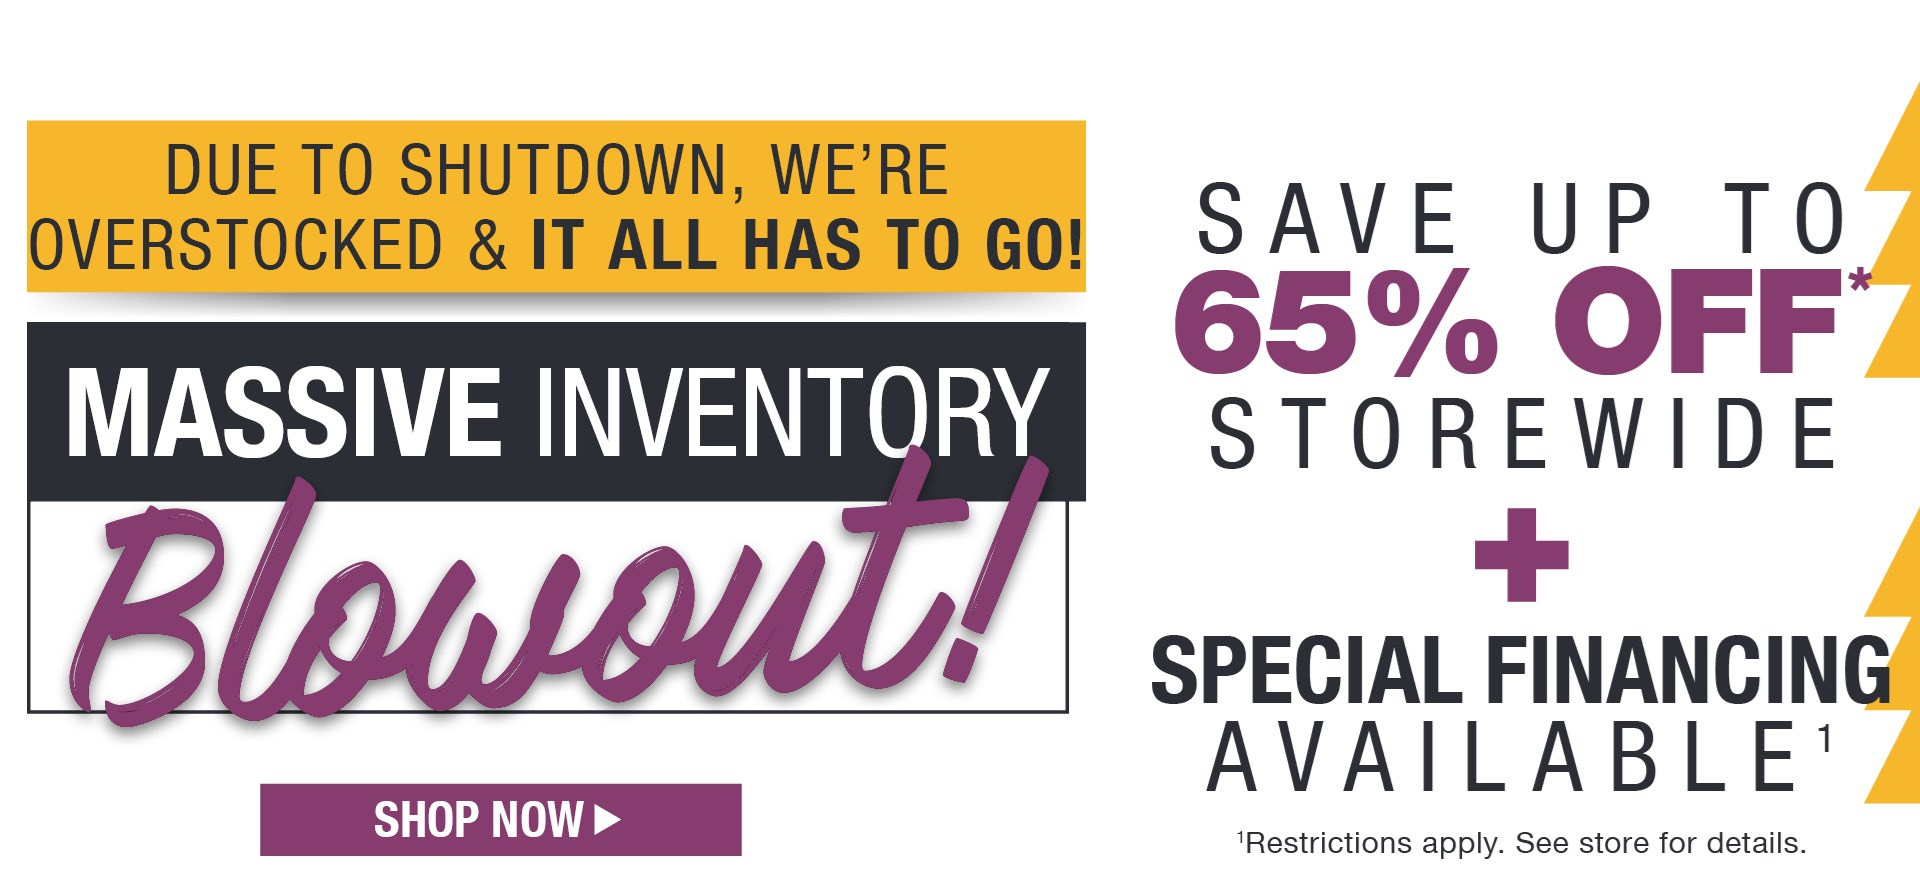 Massive Inventory Blowout